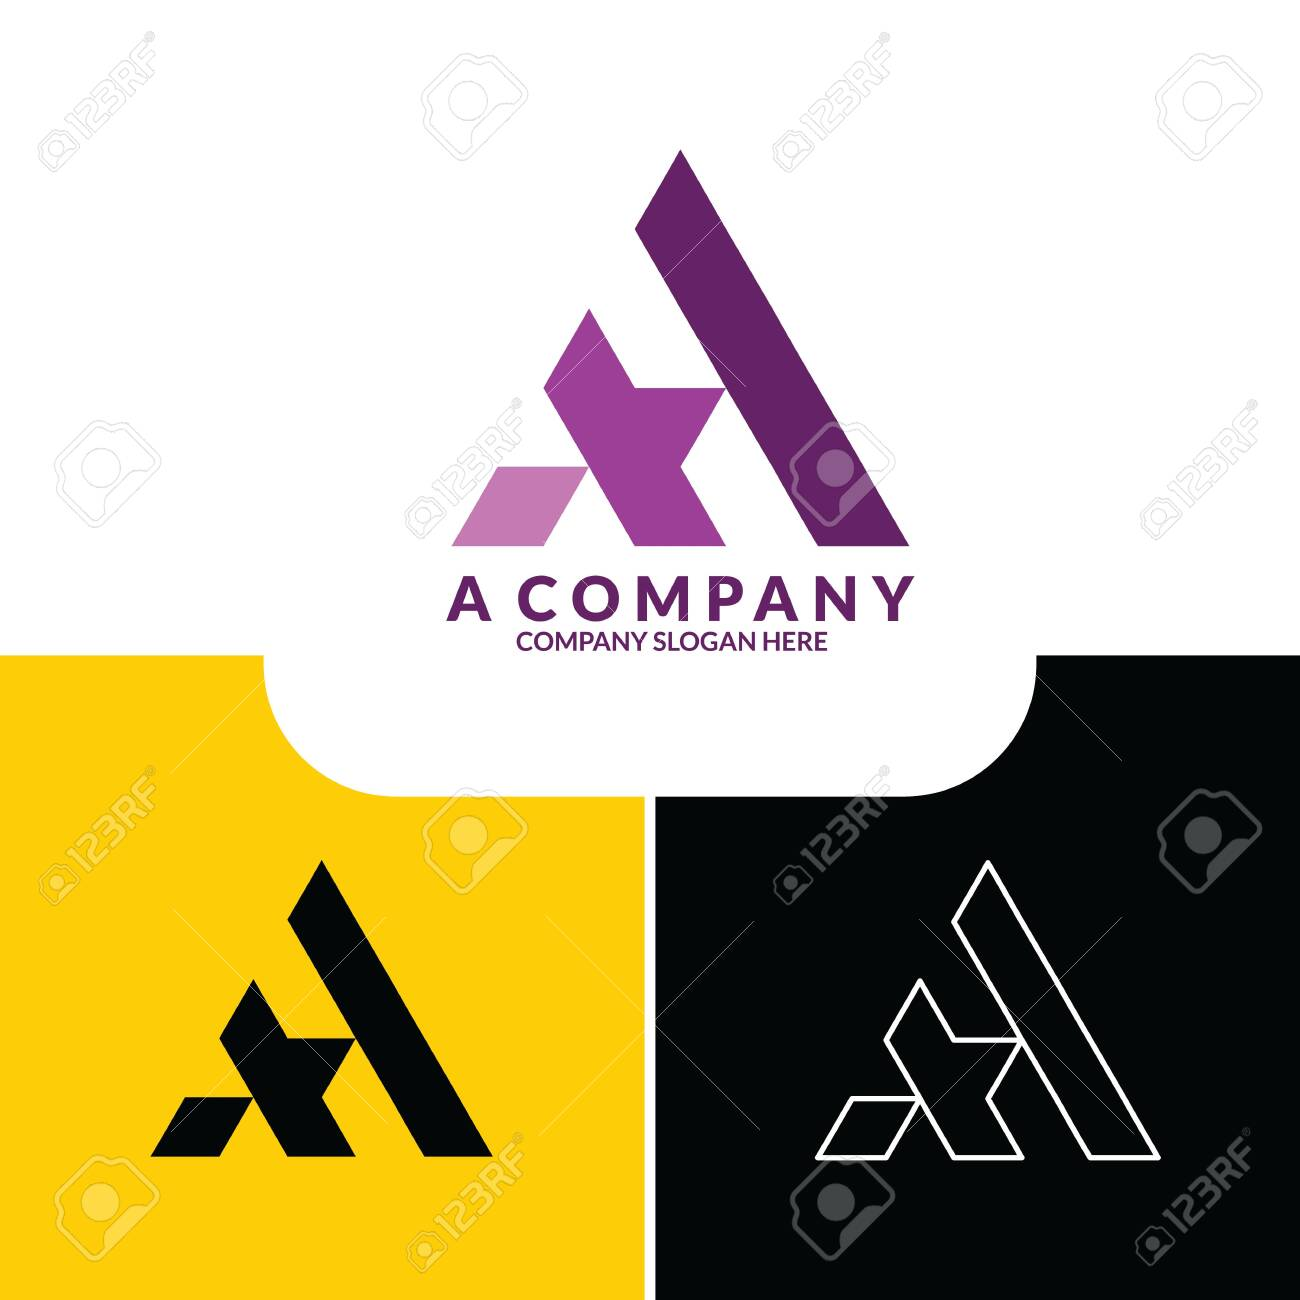 VECTOR LOGO LOGOTYPE LETTER X MODERN SIMPLE BUSINESS COMPANY - 149878212